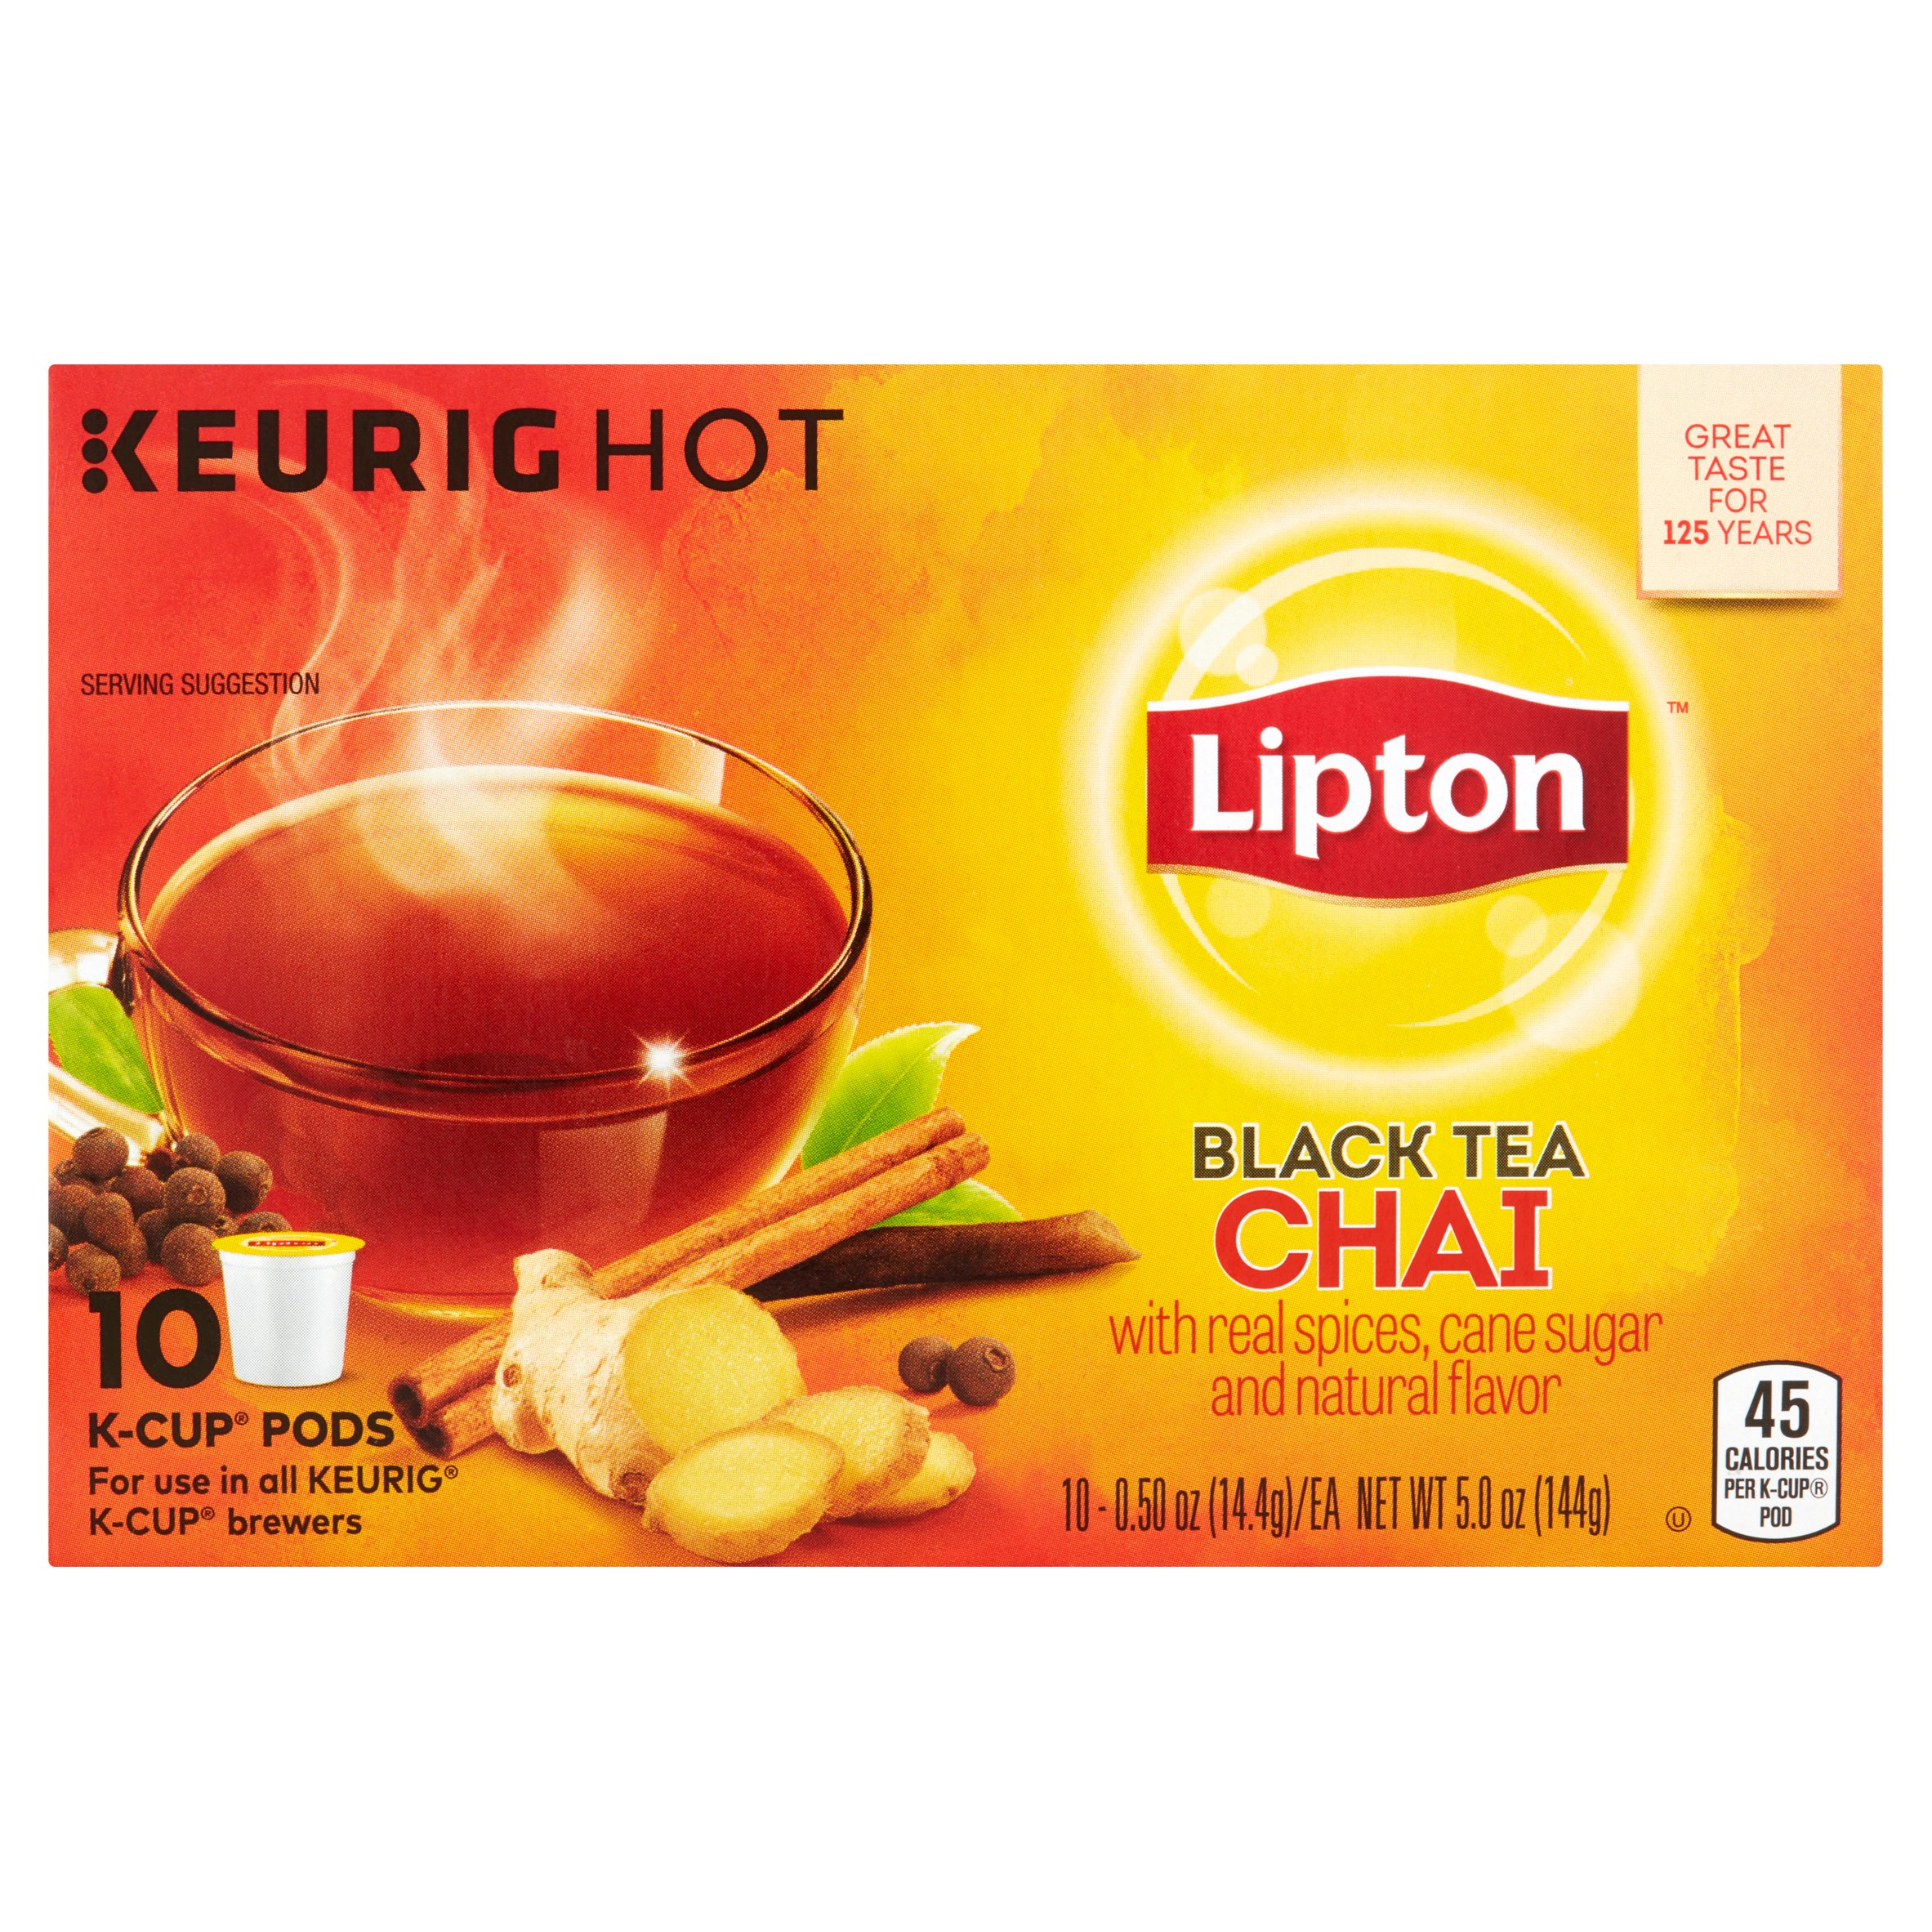 Lipton Keurig Hot Black Tea Chai K-Cup Pods, 0.50 oz, 10 count